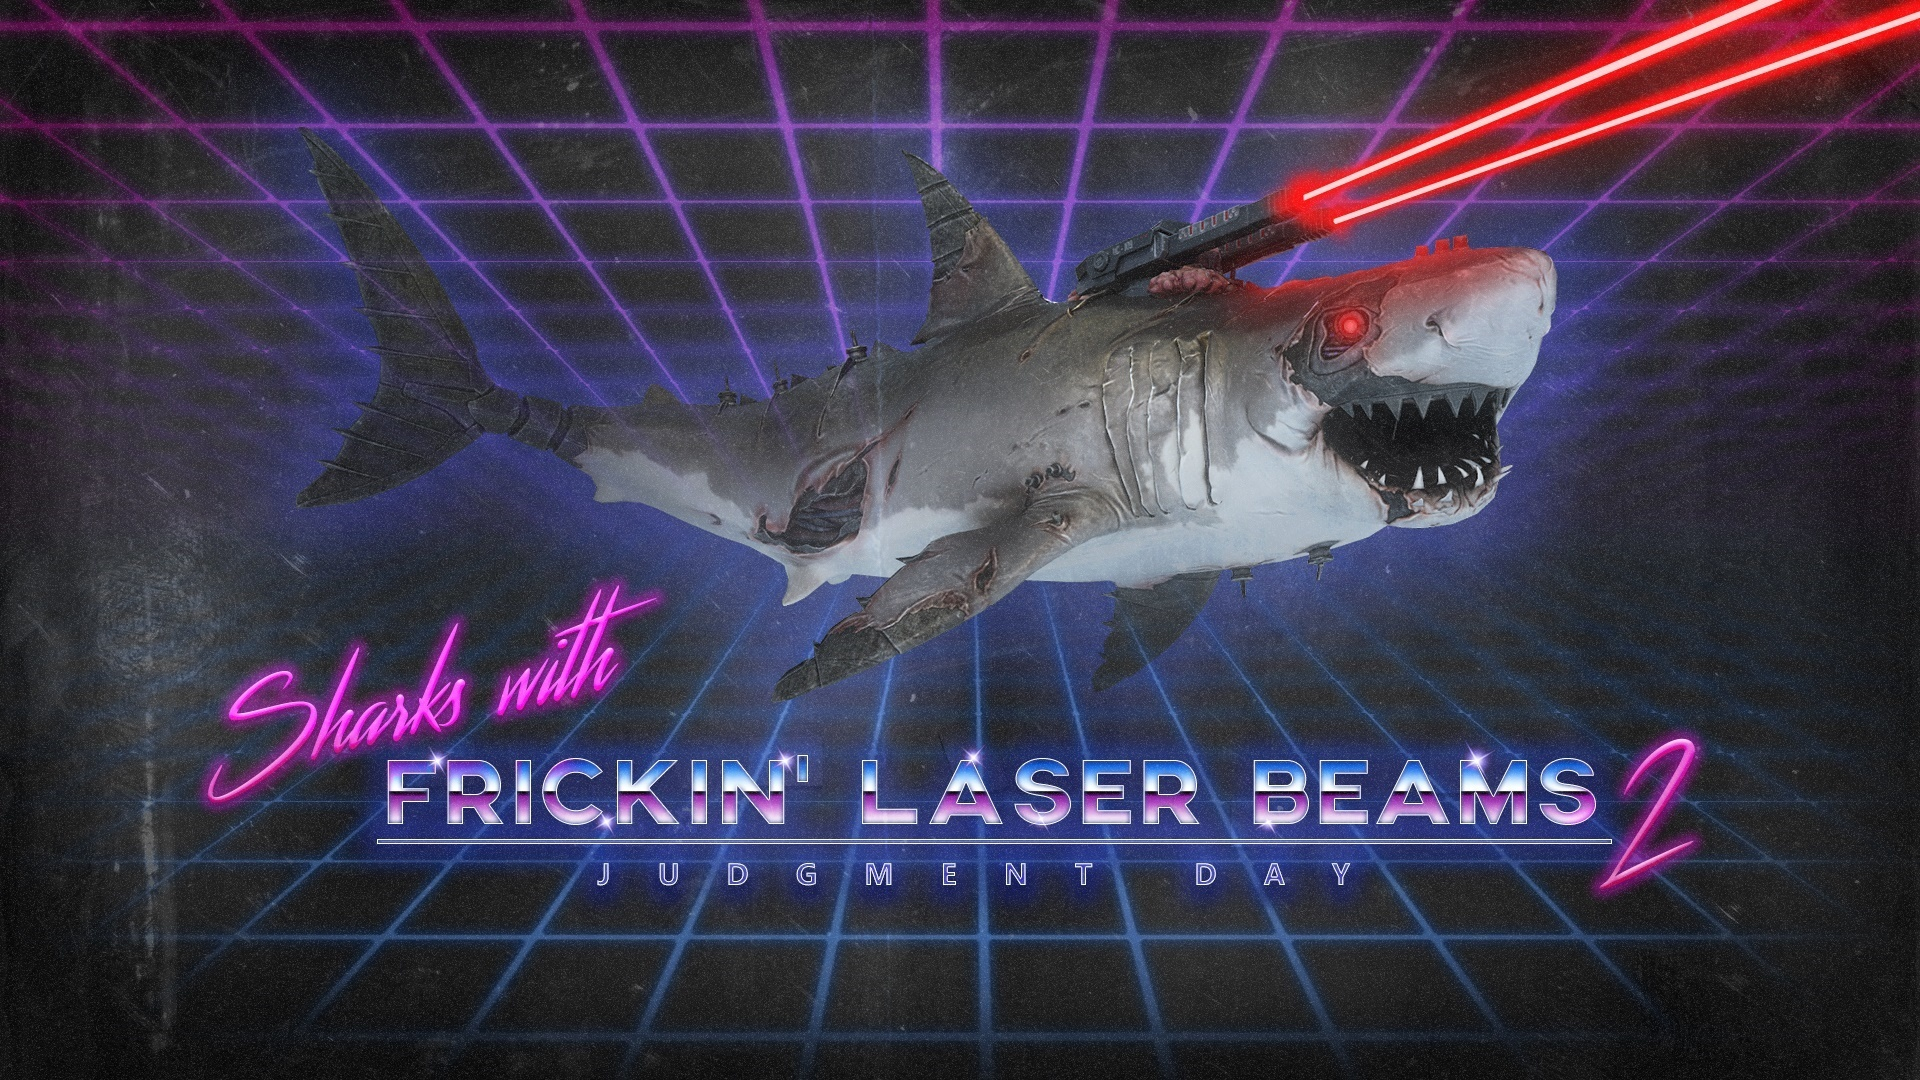 depth sharks with frickin laser beams ii judgment day